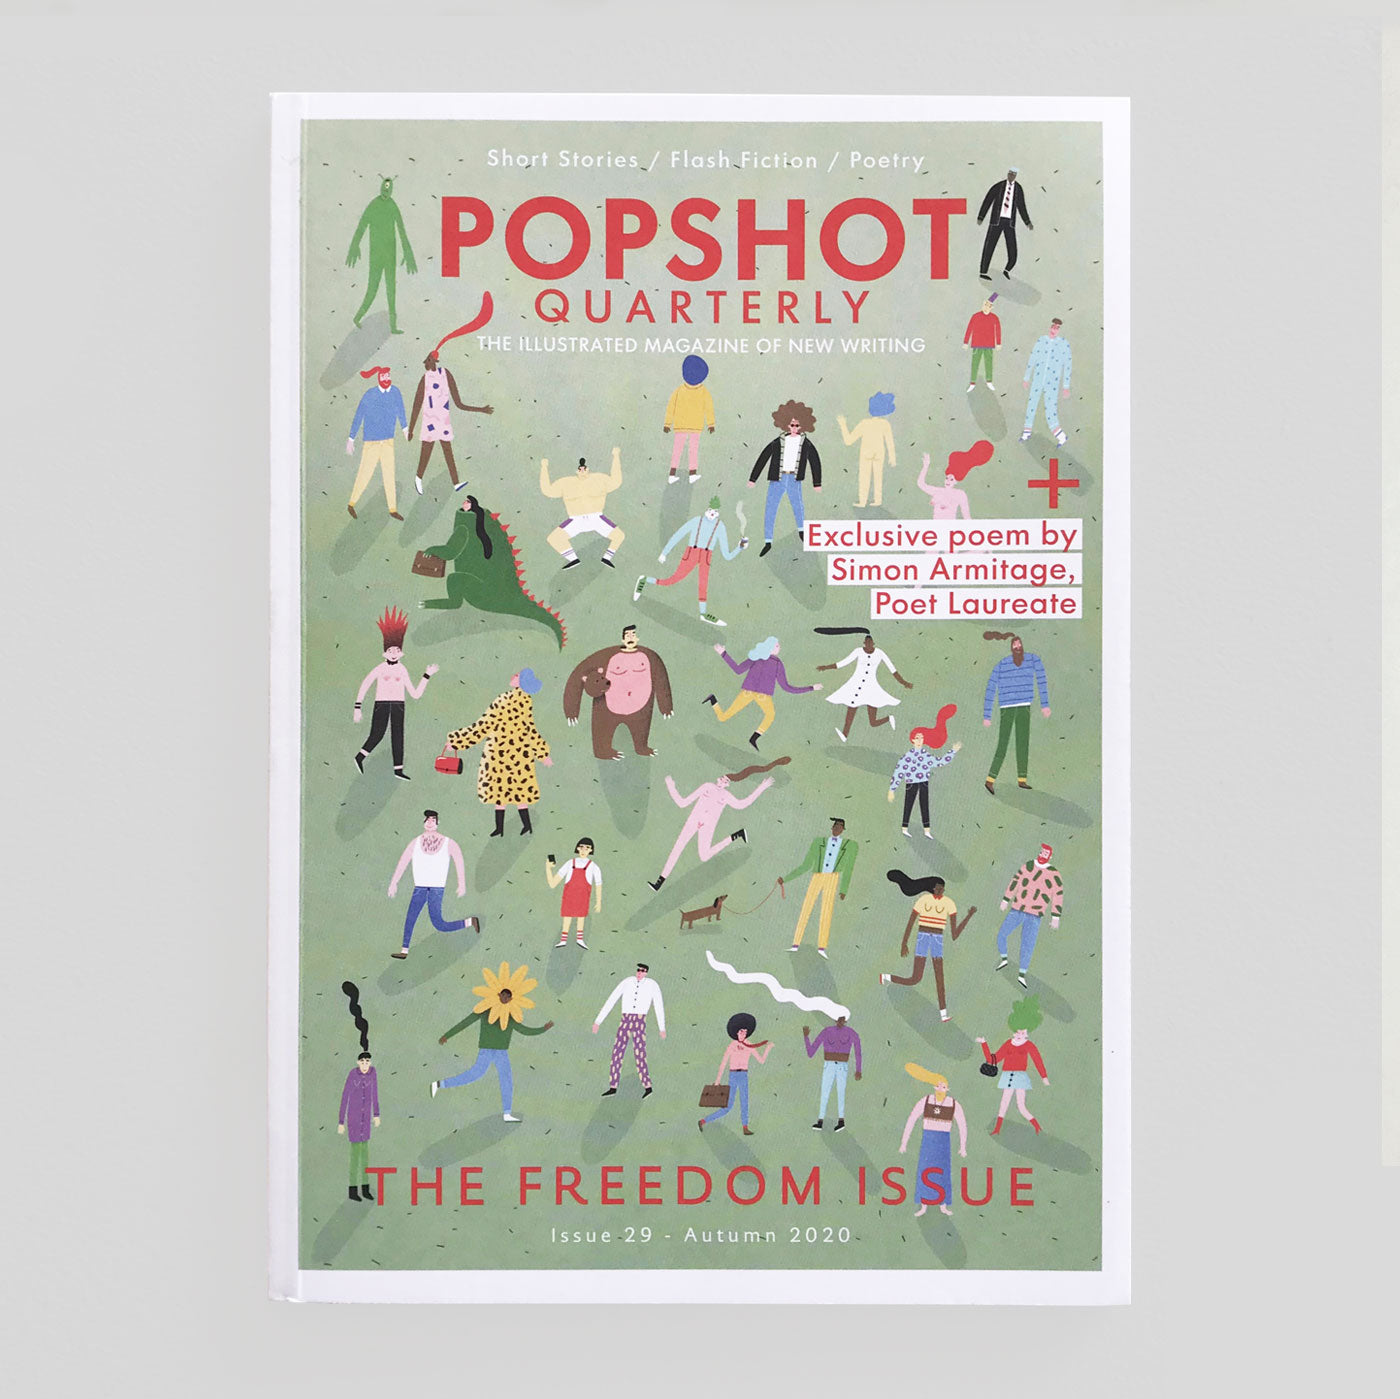 Popshot Quarterly #28 'The Freedom Issue' - Colours May Vary